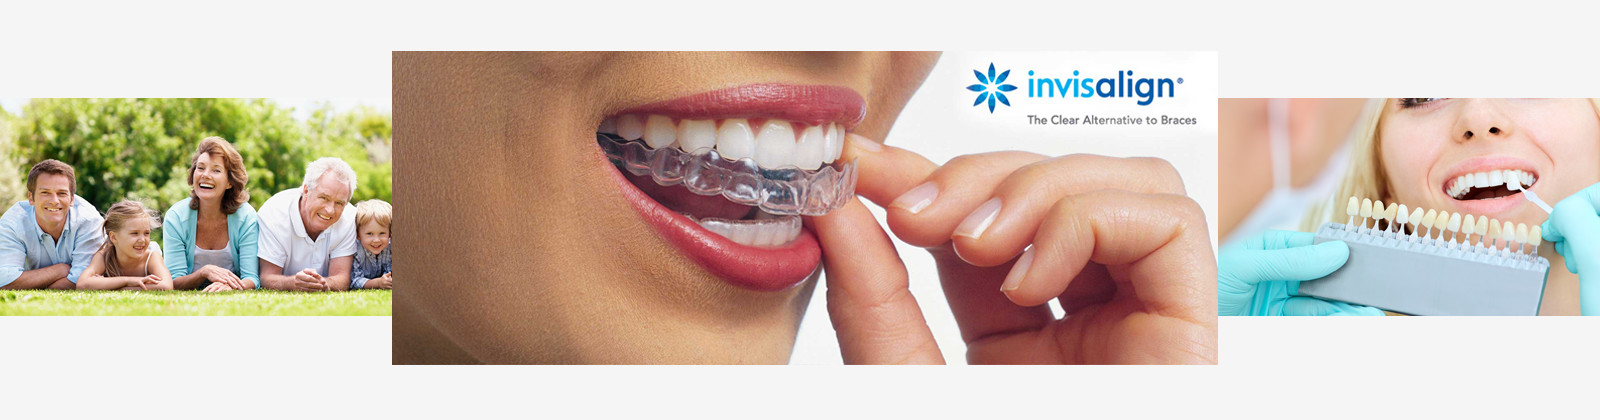 a lady placing invisalign braces over her teeth